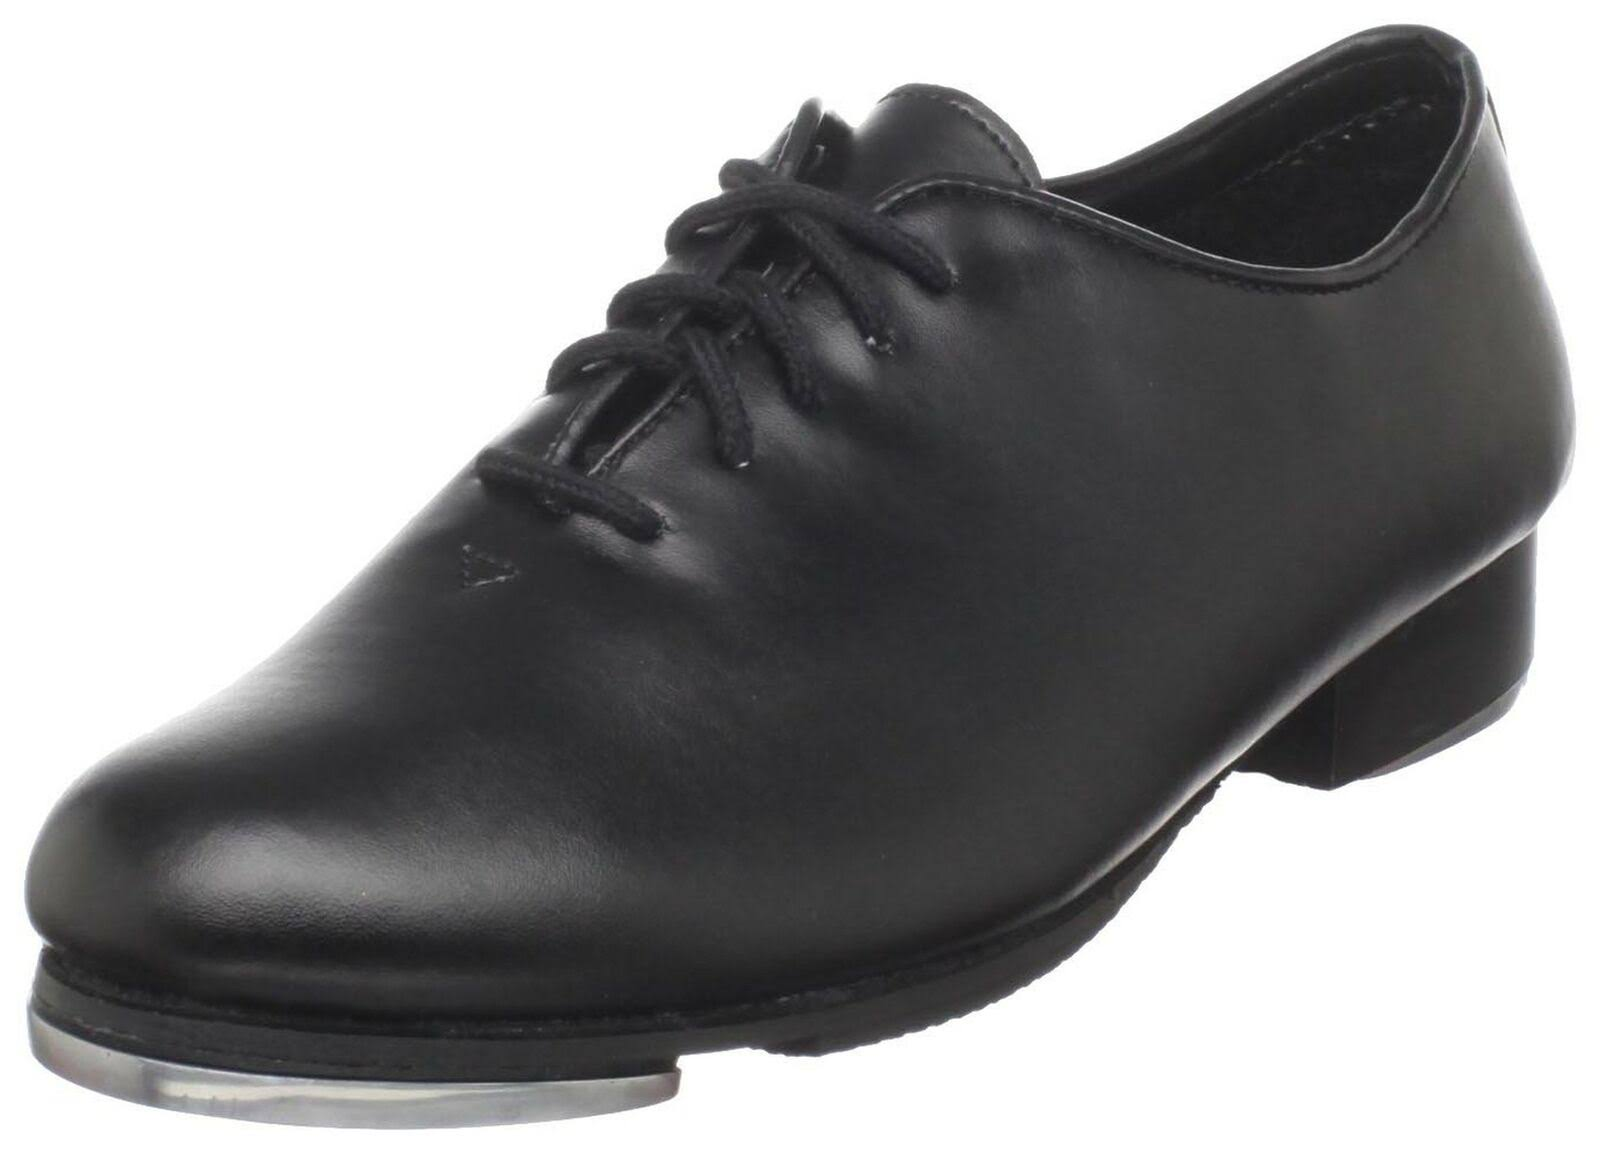 Dance Class Black Leather-Like Upper Lace Up Jazz Tap Oxford Shoes 5.5